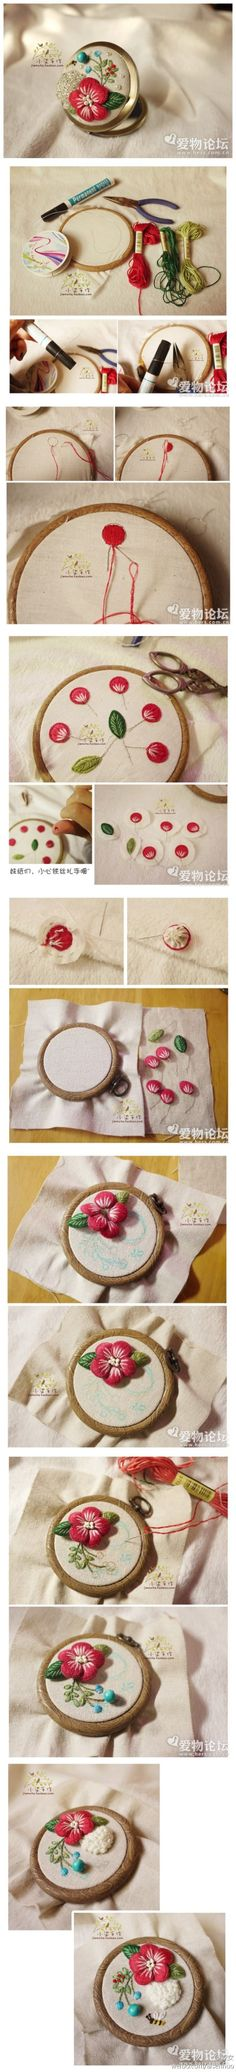 How To 3d Flowers Embroidery (stumpwork)